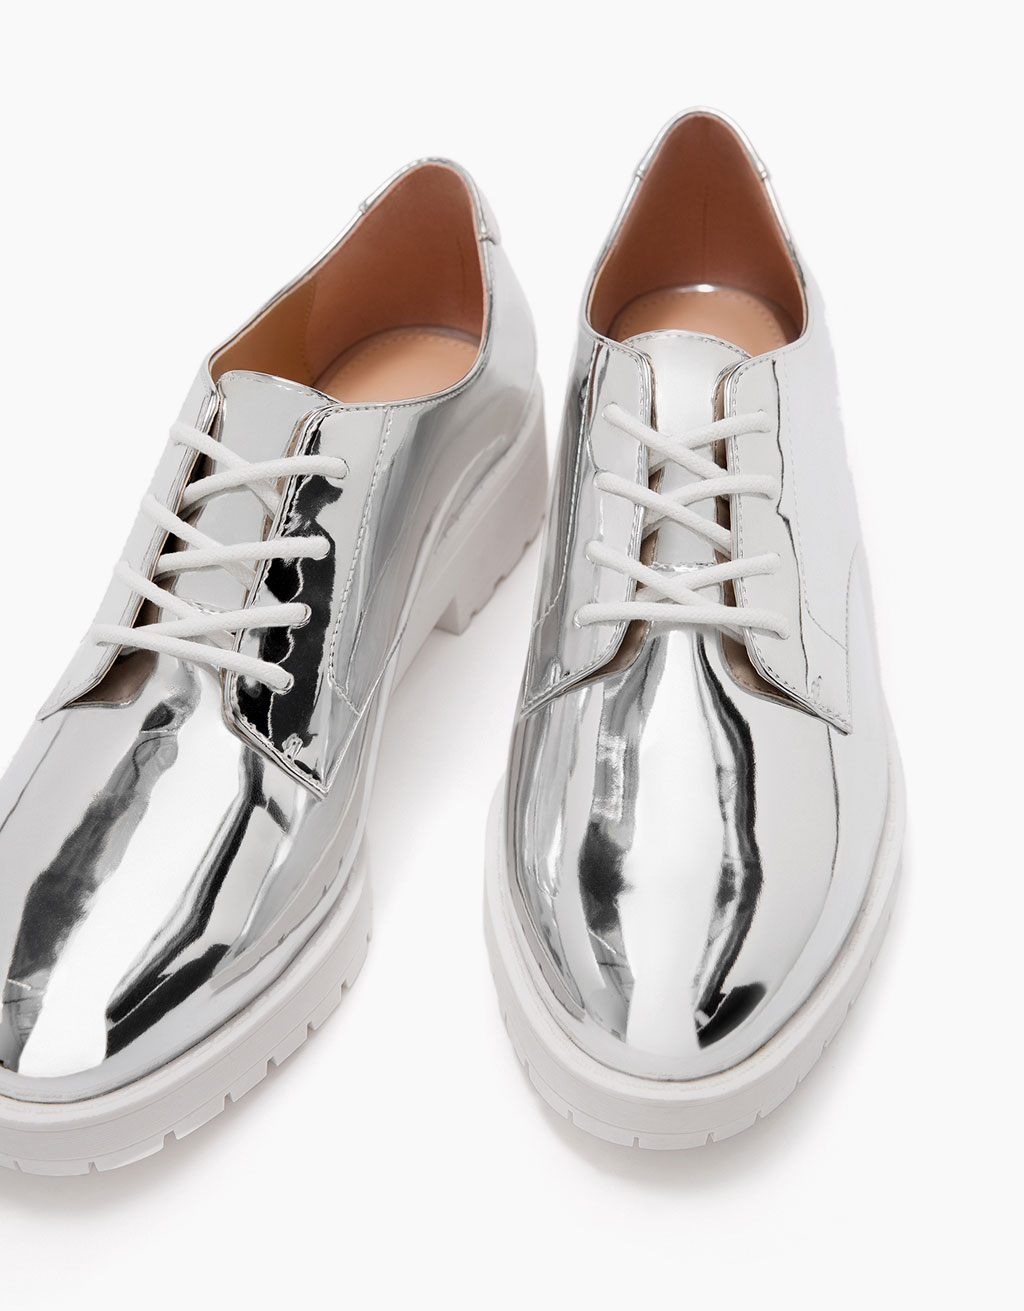 Flat metallic lace-up shoes